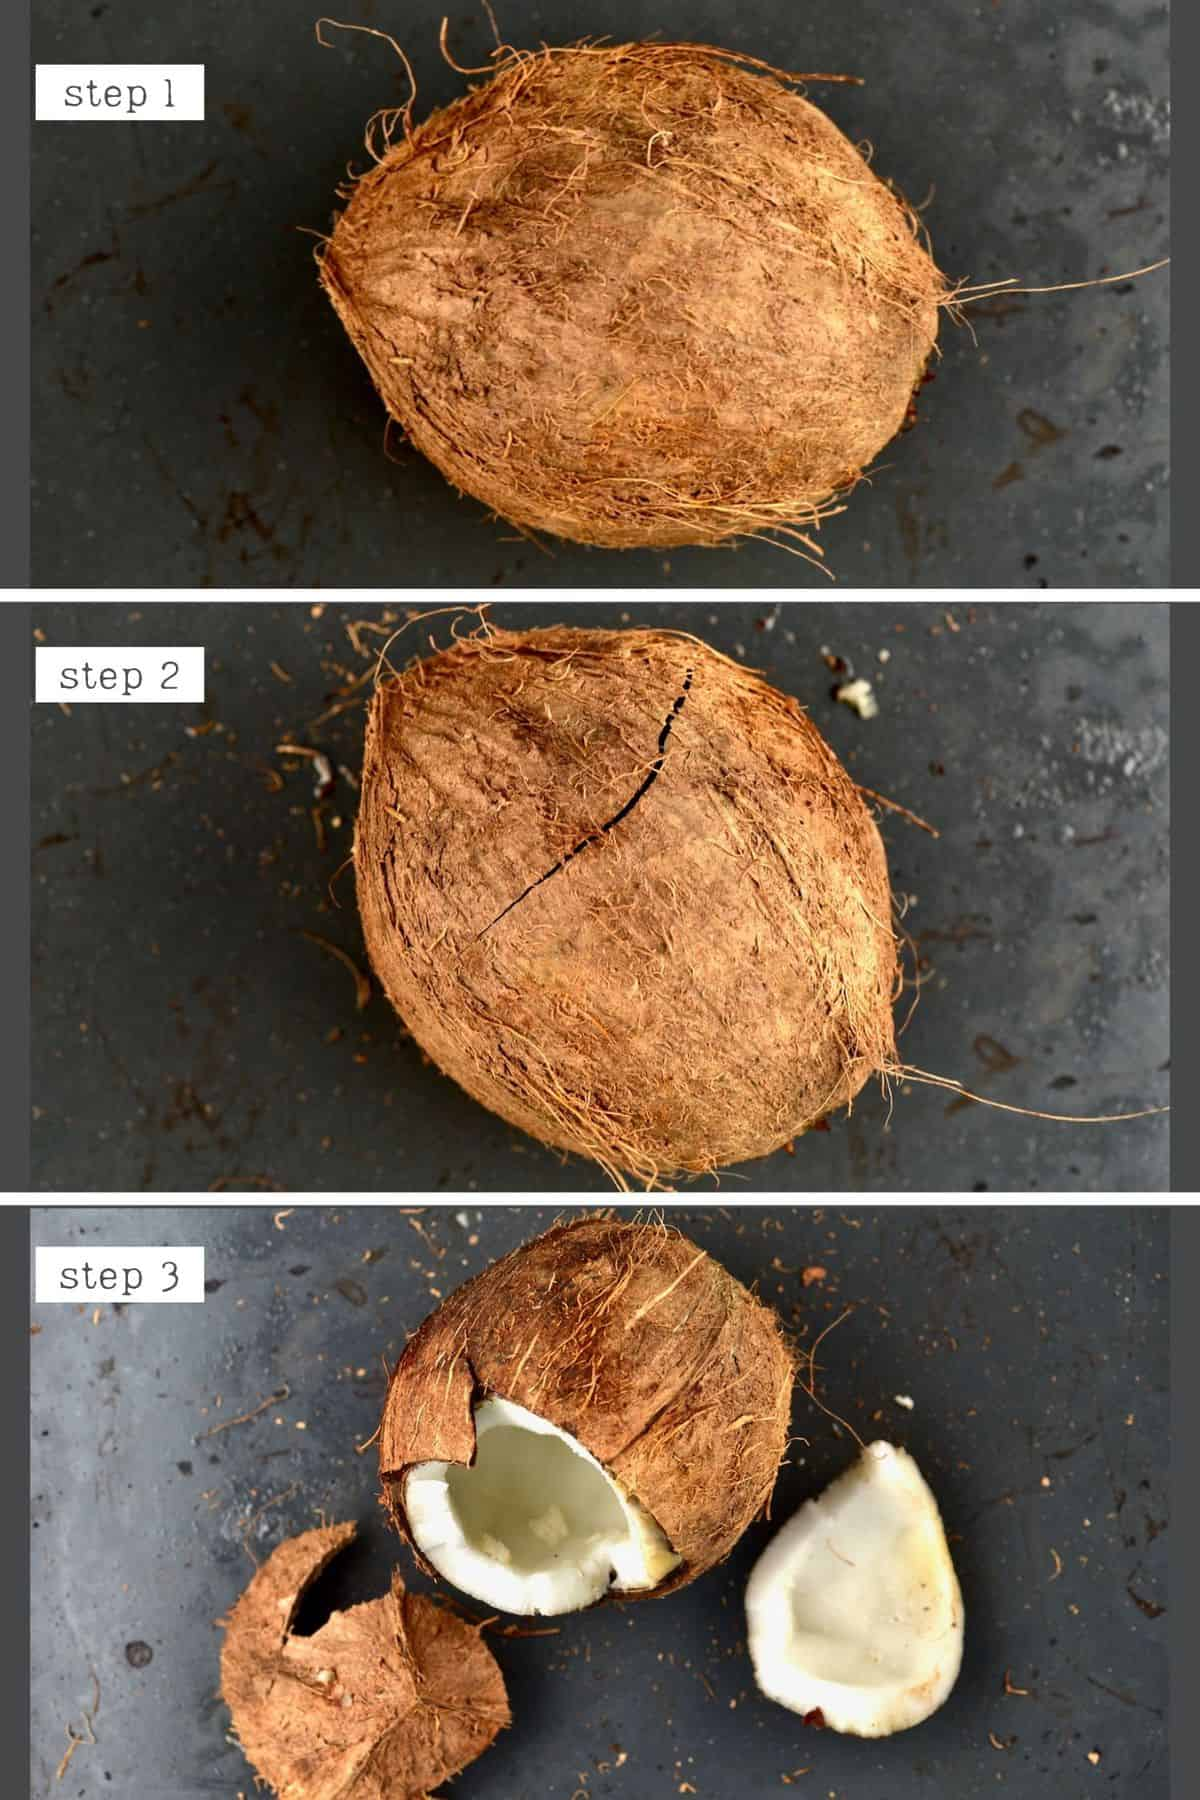 Steps of opening a coconut using the Oven method